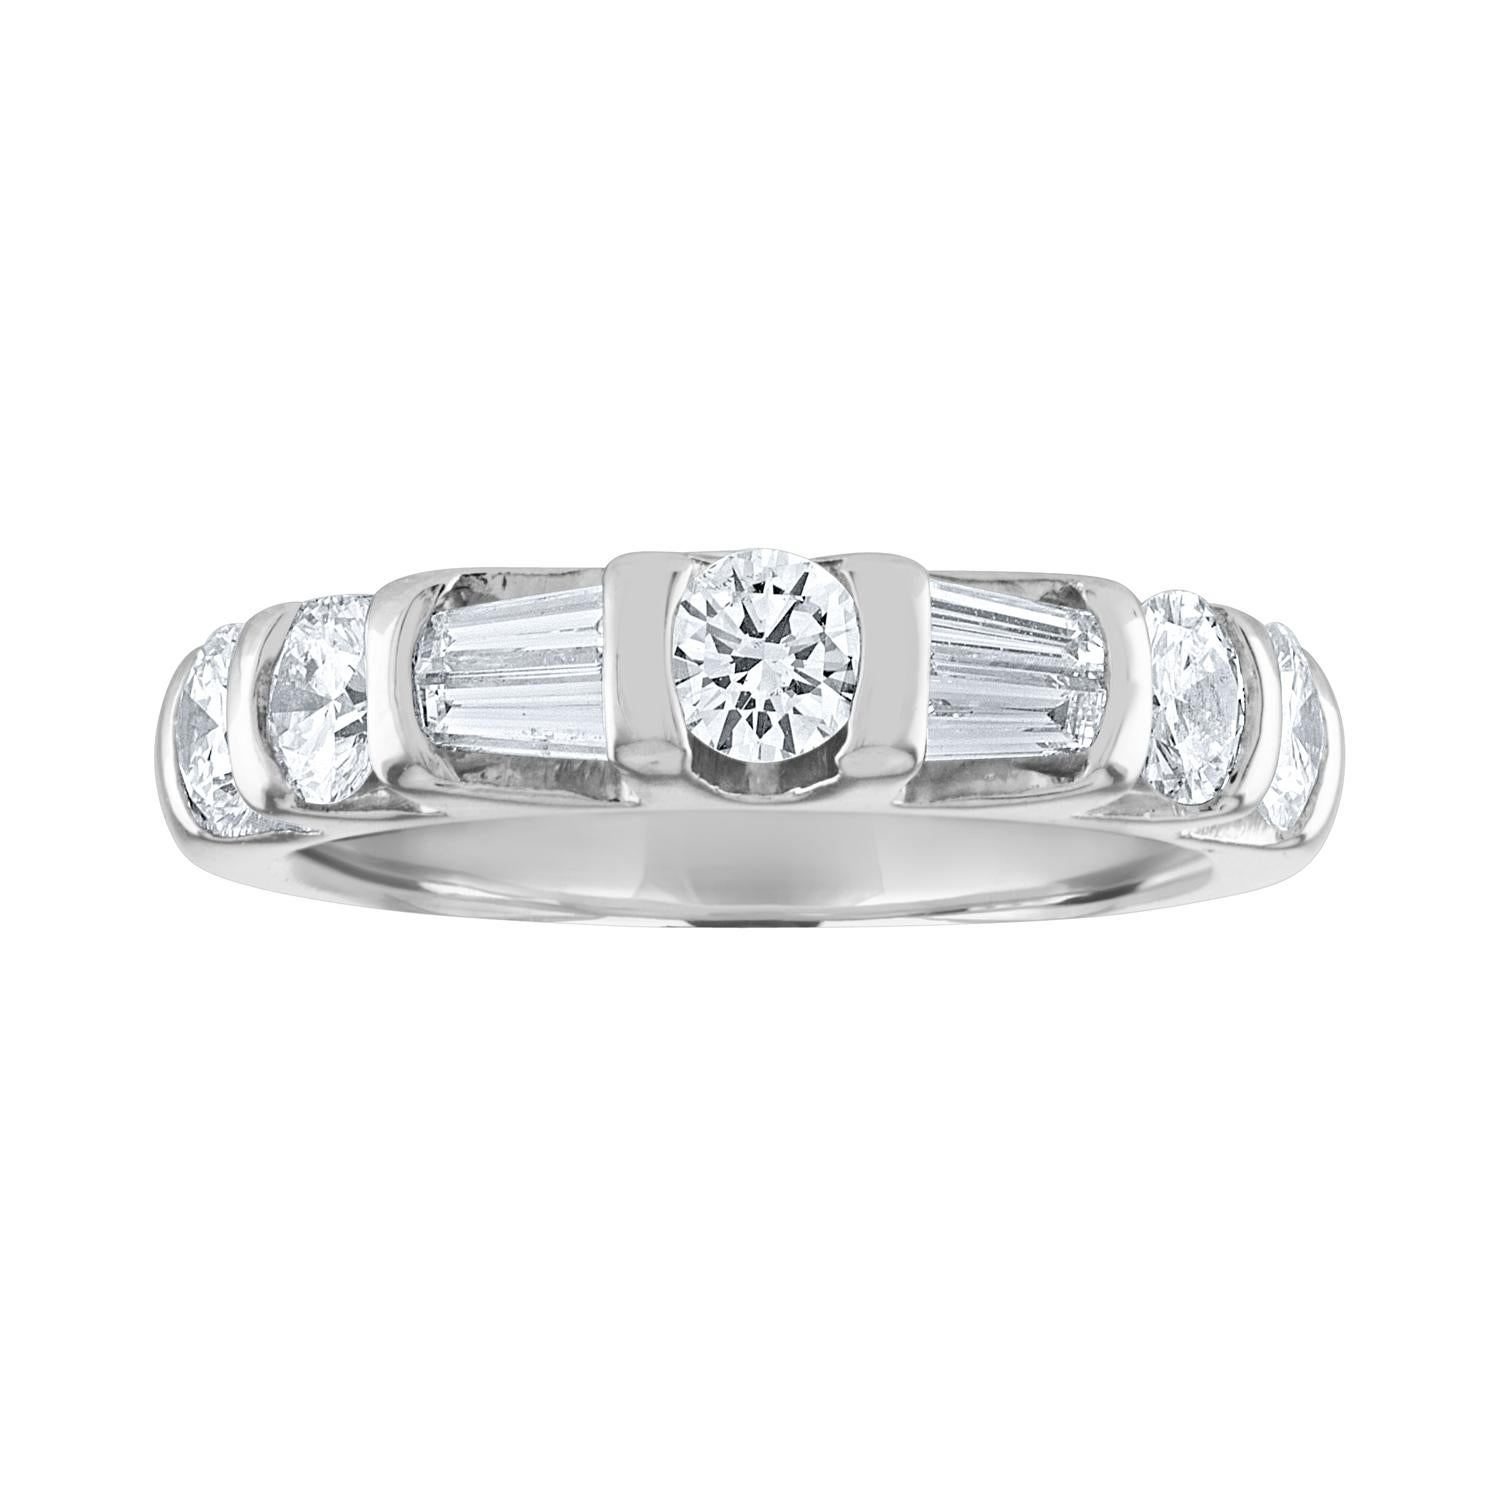 1.25 Carat Round And Baguette Diamond Half Band Platinum Ring